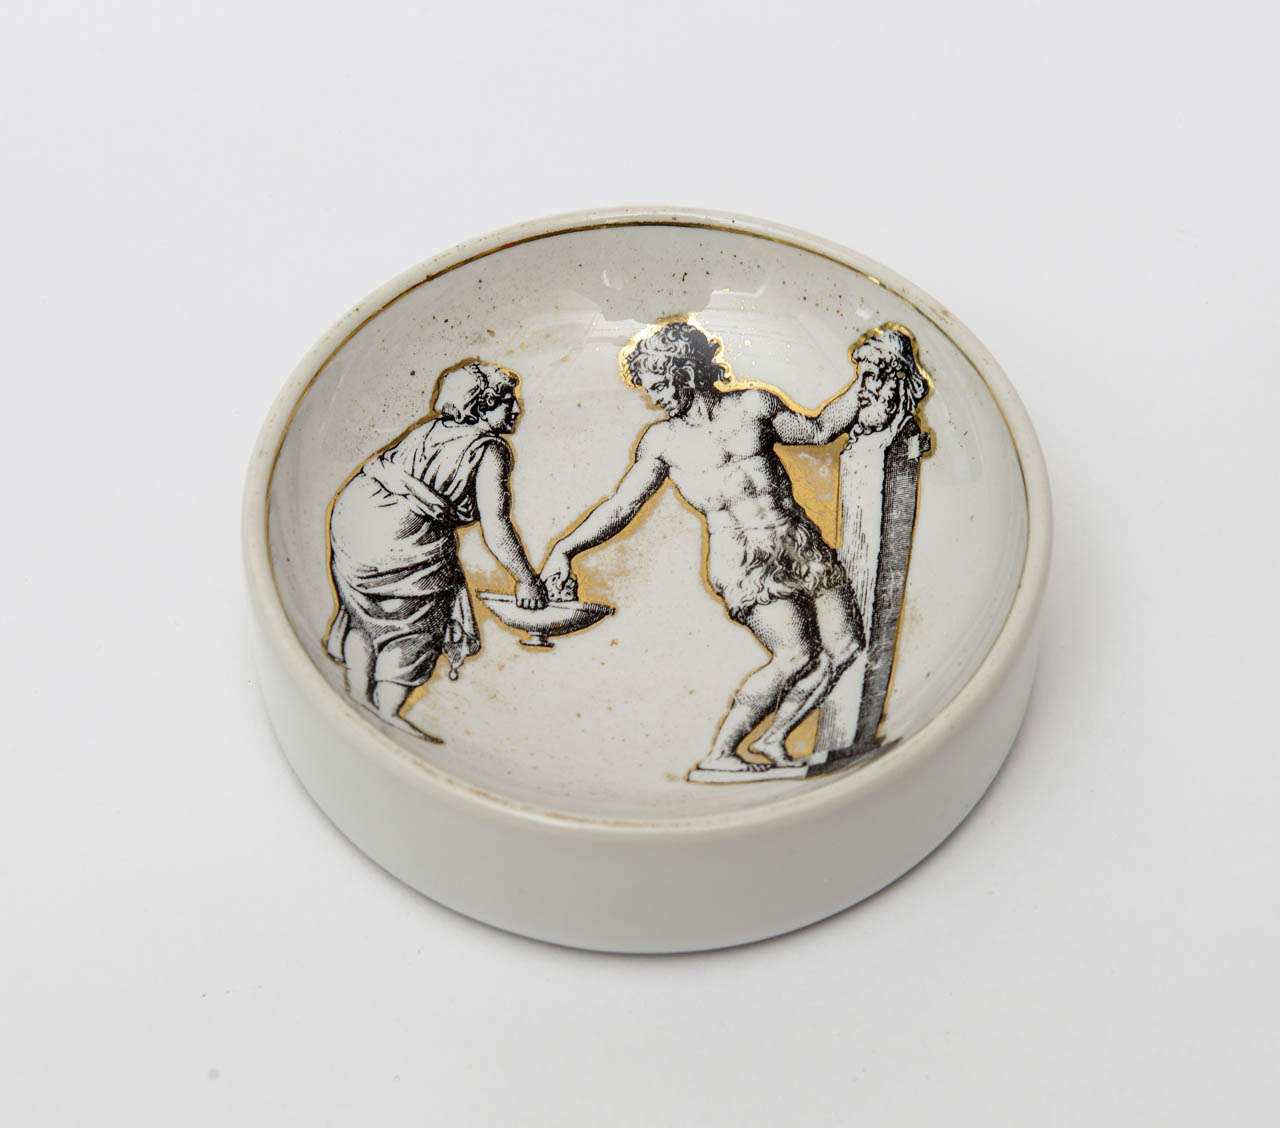 Classical and Roman would elicit the imagery on this signed lovely vintage Piero Fornasetti porcelain gilded bowl/ dish. It is hallmarked on the bottom. It is Mid-Century Modern and classical Italian.